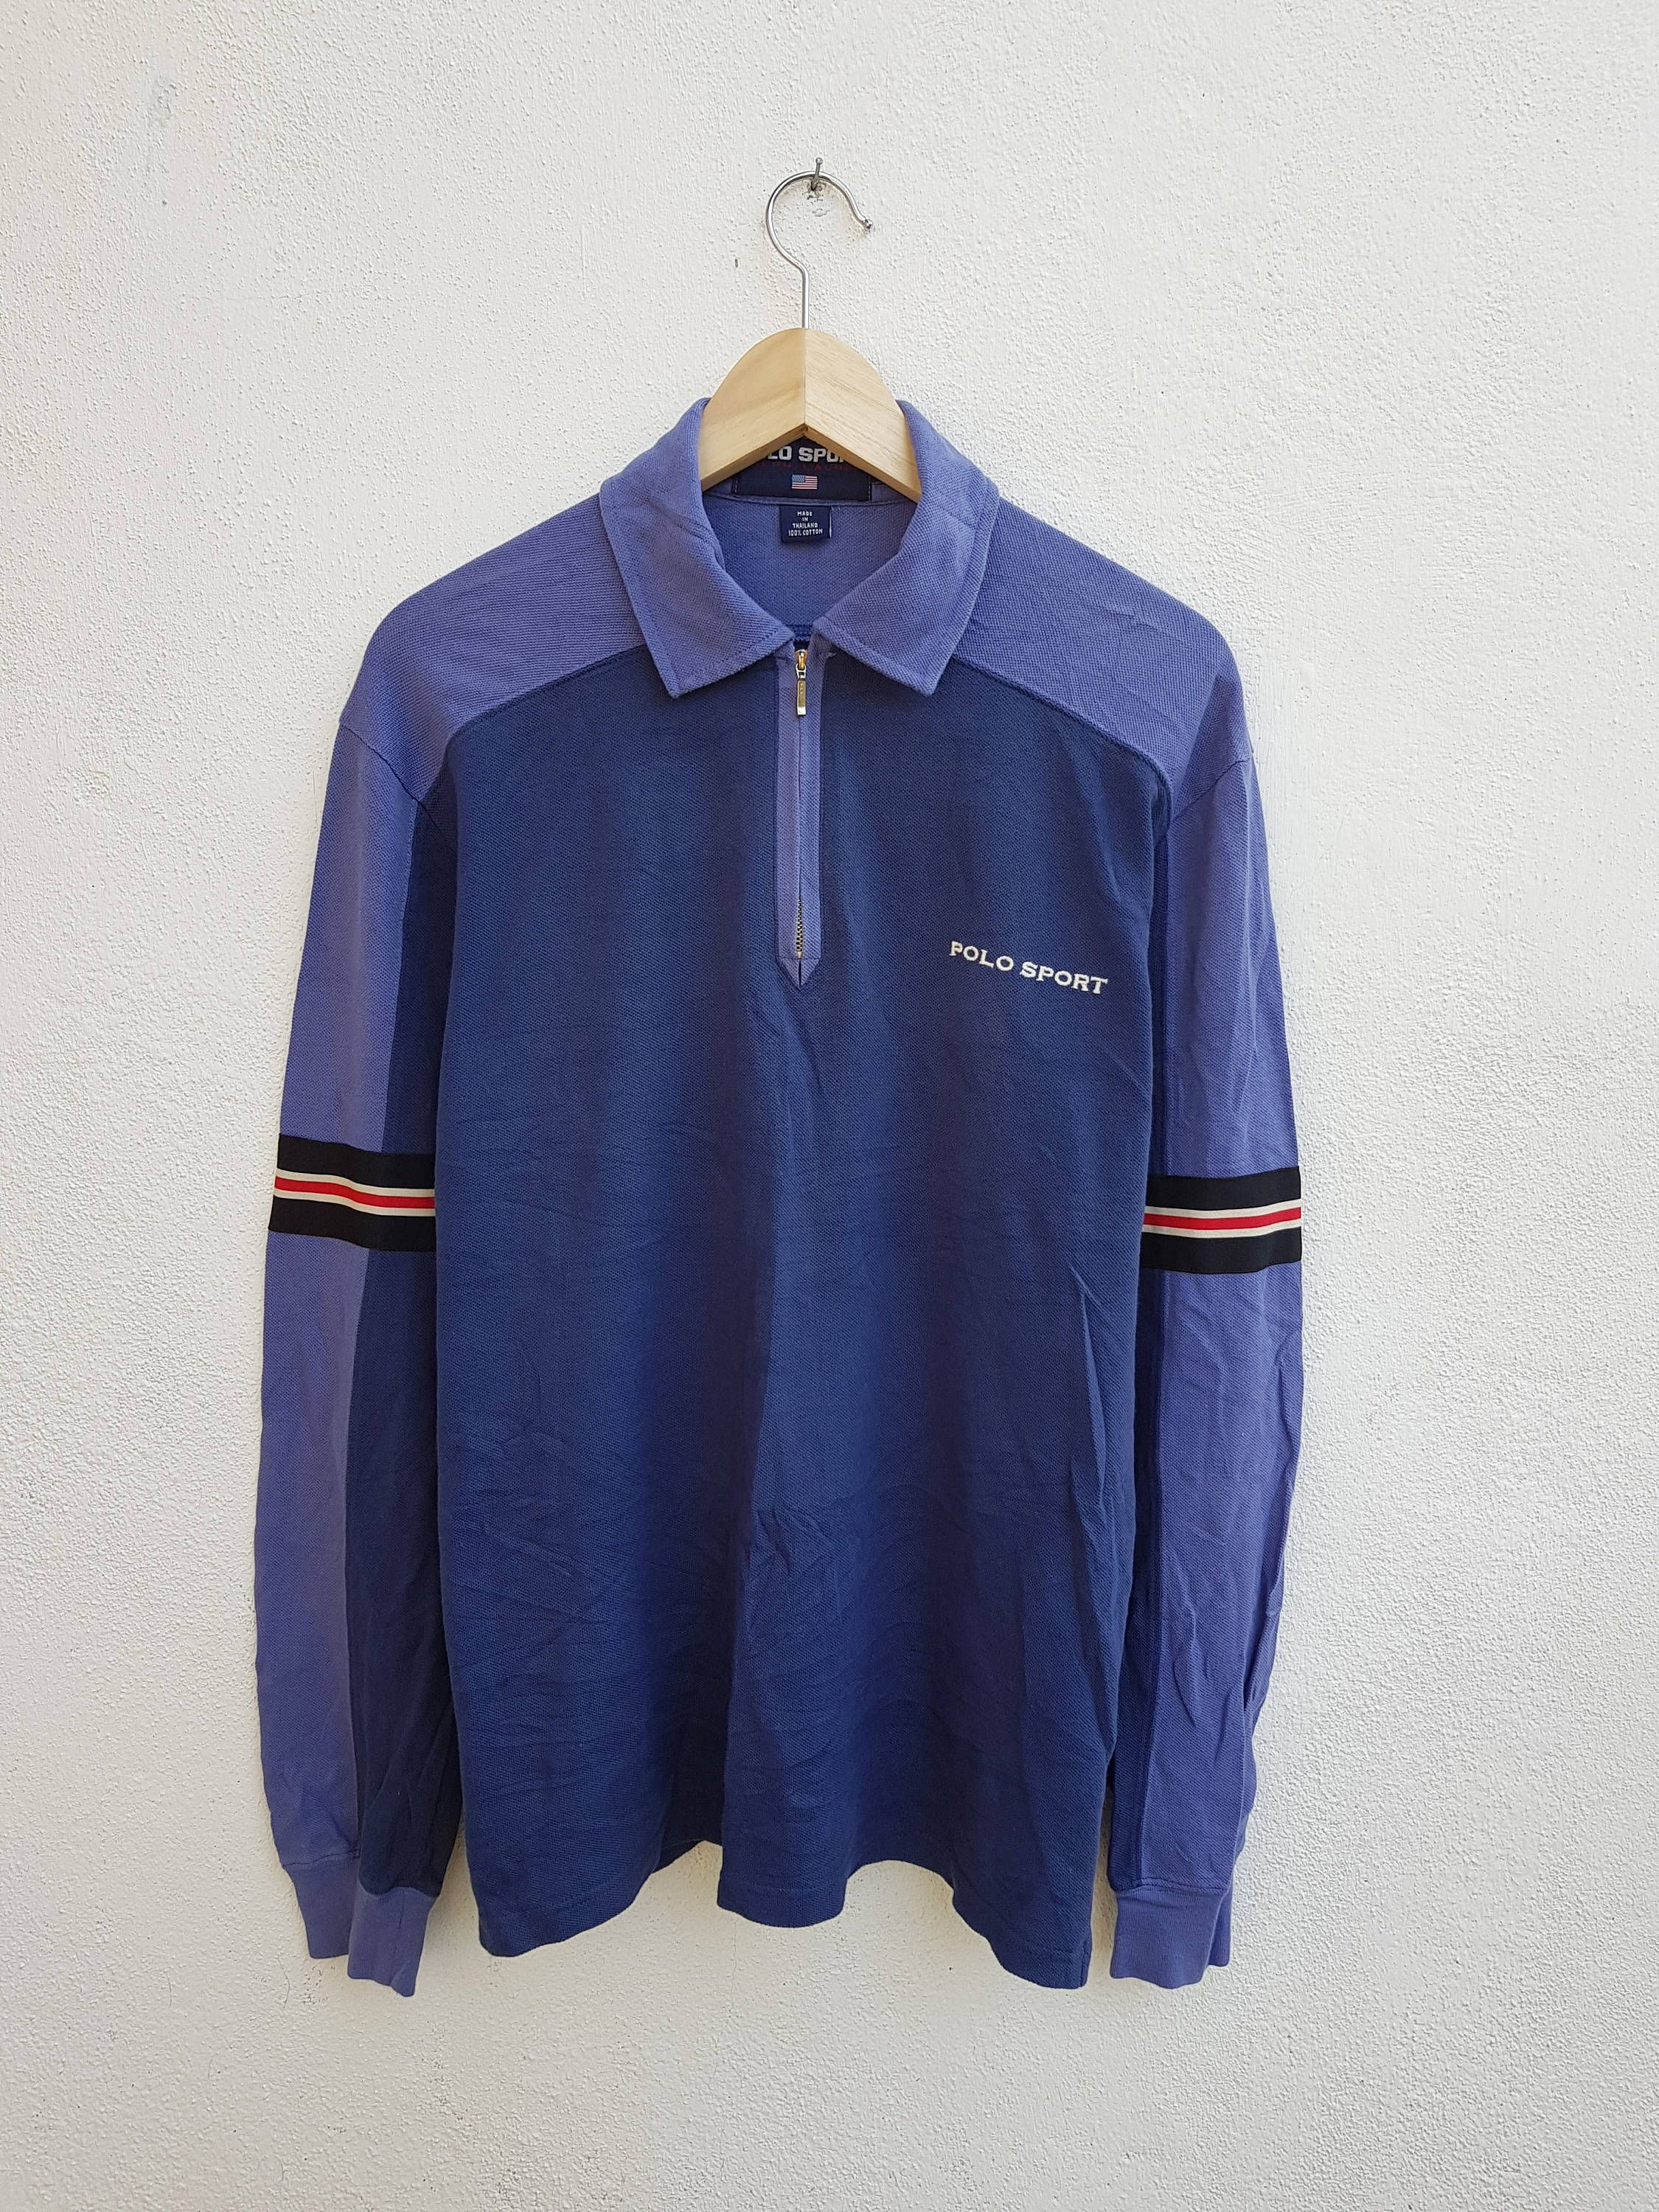 b9ae78b7 Vintage 90s Polo Sport Ralph Lauren Long Sleeve Stripes Color Block  Embroidered Logo Polos Zip Casual Shirt Size S Adult by BubaGumpBudu on Etsy